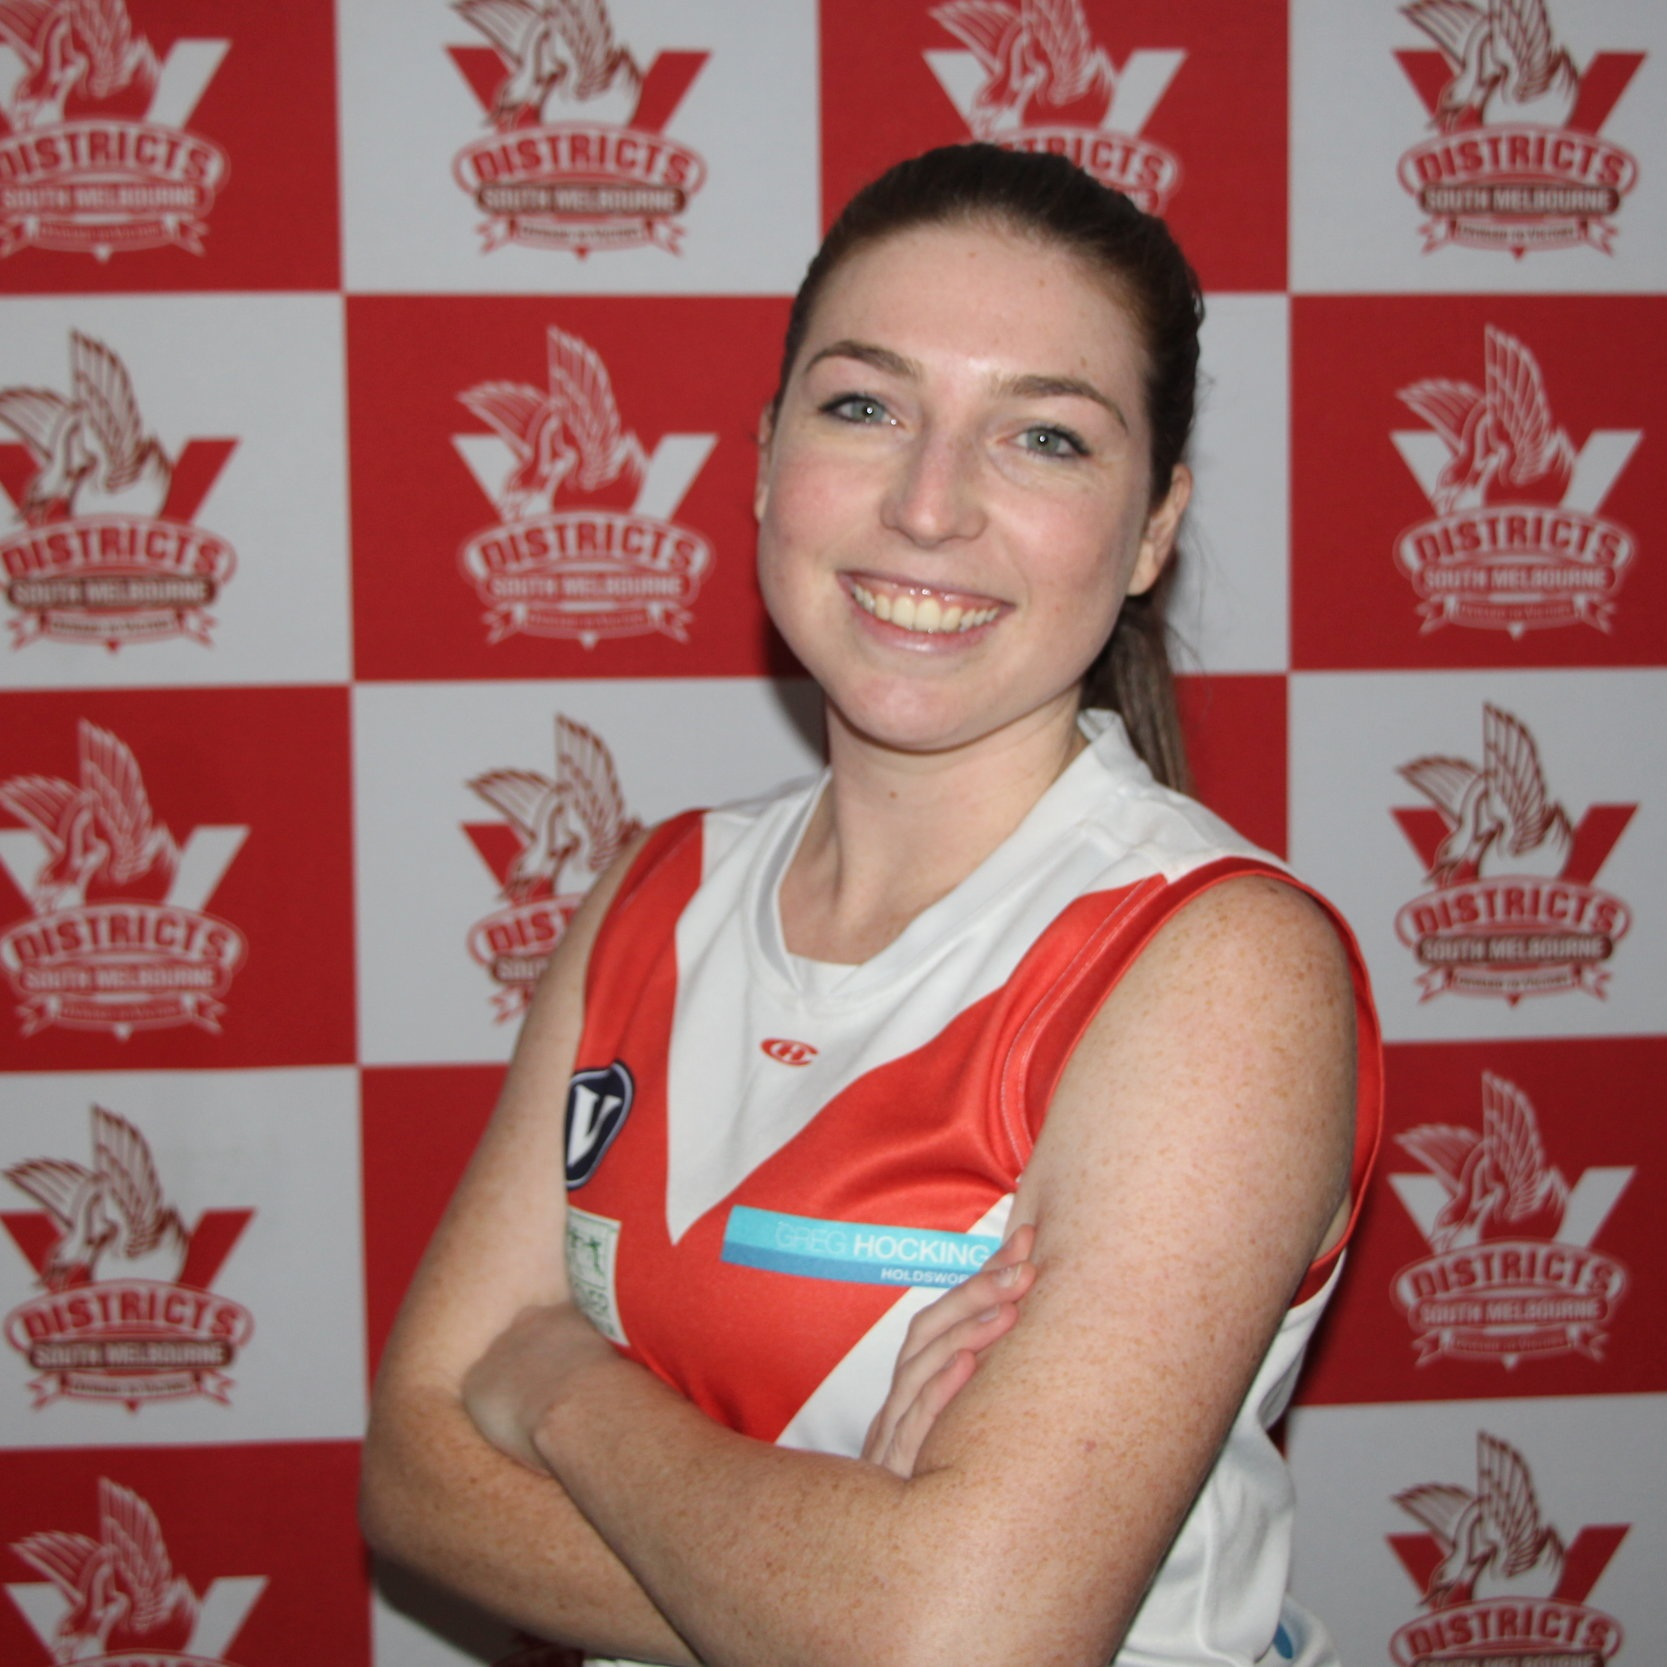 Darcy  2019's #72 is Darcy. She joins us from the sticks (Geelong…) and wanted to find a club that would let her meet people her own age and exercise too- SMDGFC definitely has that covered. When she isn't wearing the red and white you'll find Darcy living up her Friday nights watching Collingwood win from a bar in Richmond- well maybe this is the dream? Darcy says that at South Melbourne she was welcomed by the culture, the commitment and sense of community-We'd all agree that the team is home away from home for so many players.